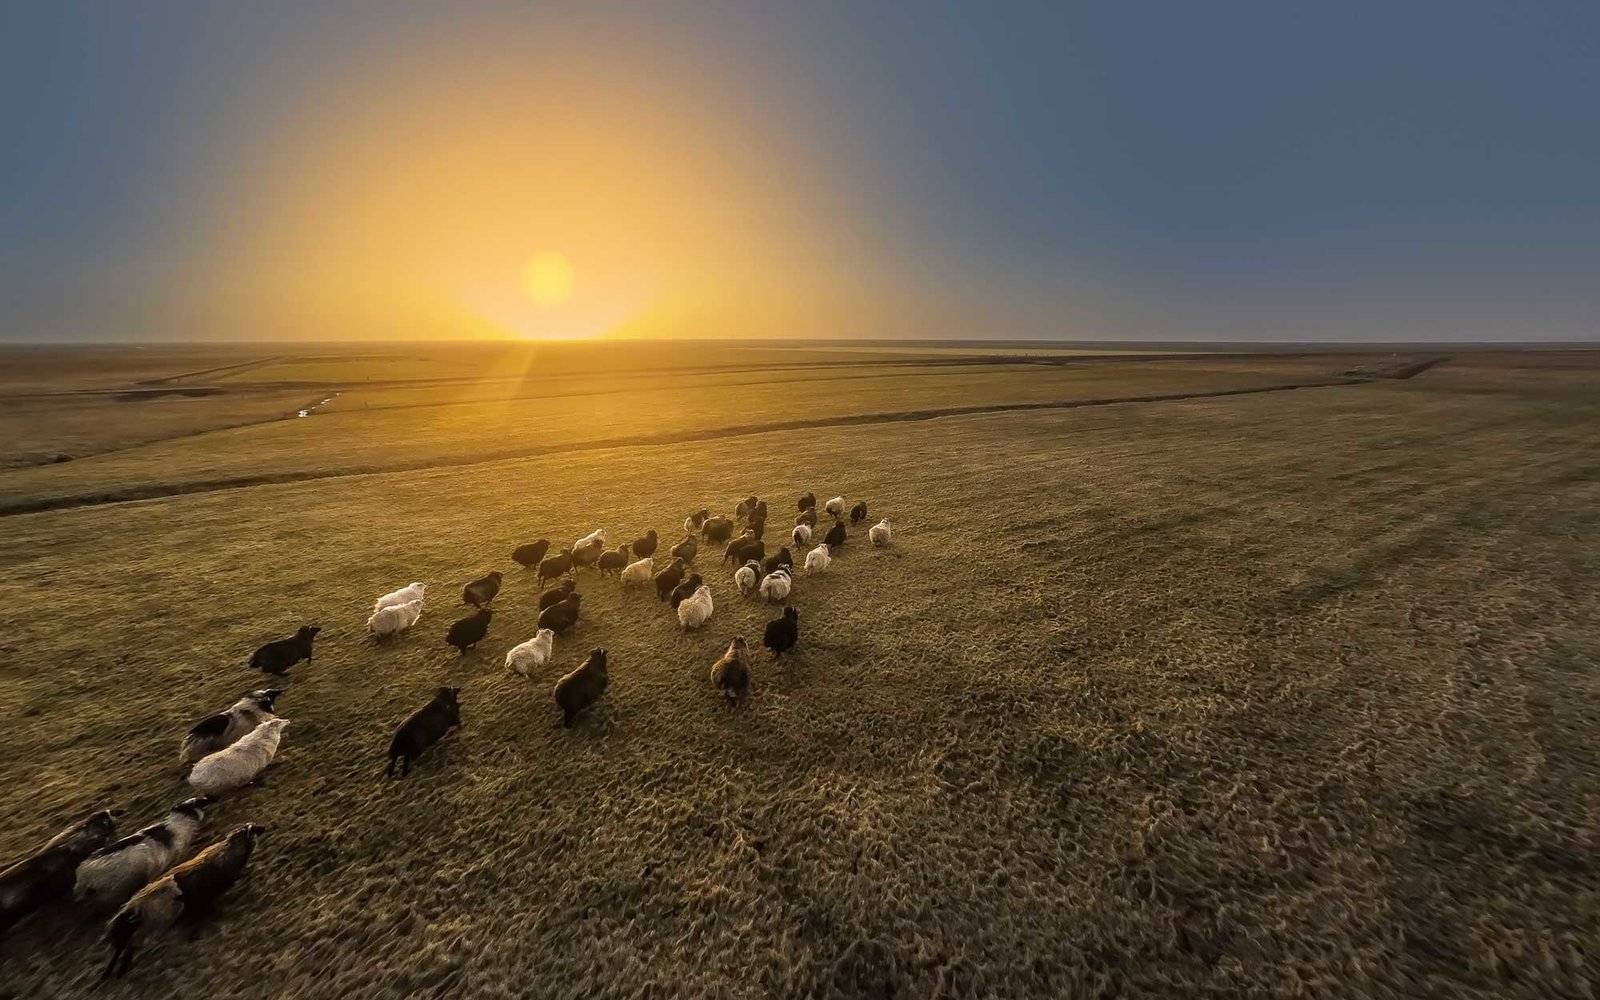 Sheep running at sunset, Iceland